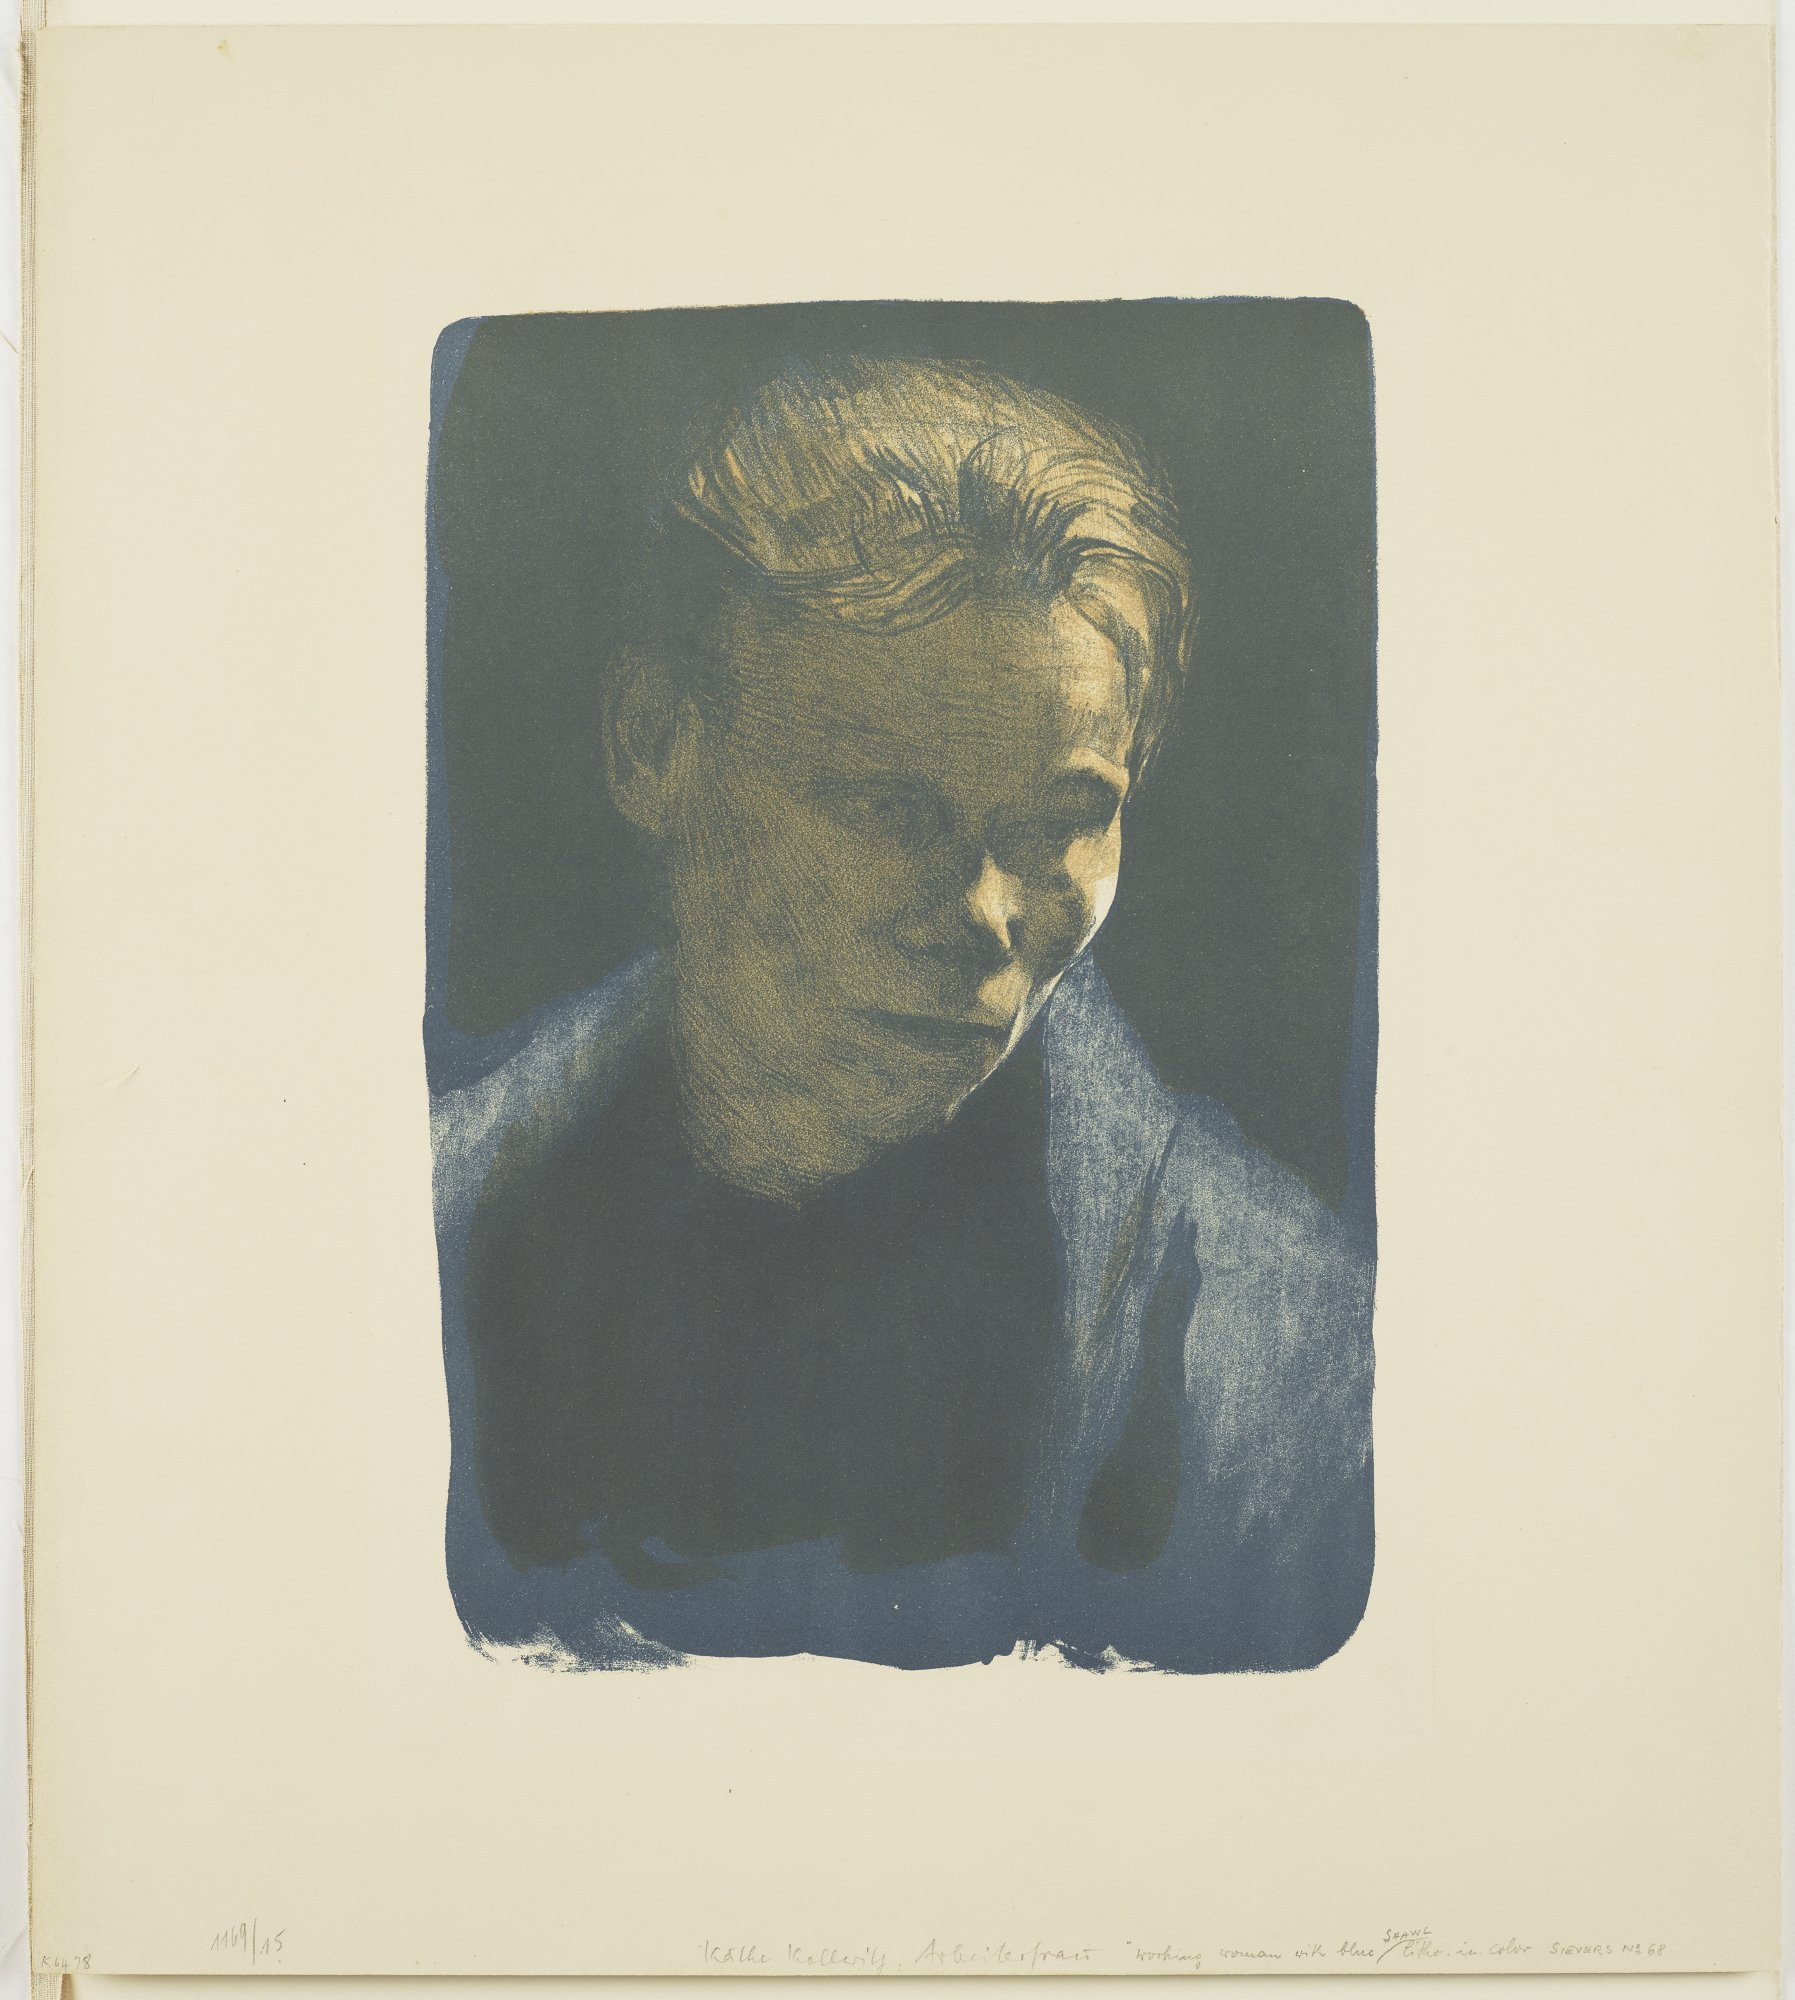 Käthe Kollwitz, (German, 1867-1945), Portrait of a Working Woman with Blue Shawl, 1903, Lithograph on wove paper, 19 ½ x 17 ½ in., Museum Purchase from the Wally Findlay Acquisition Fund, 1996.06